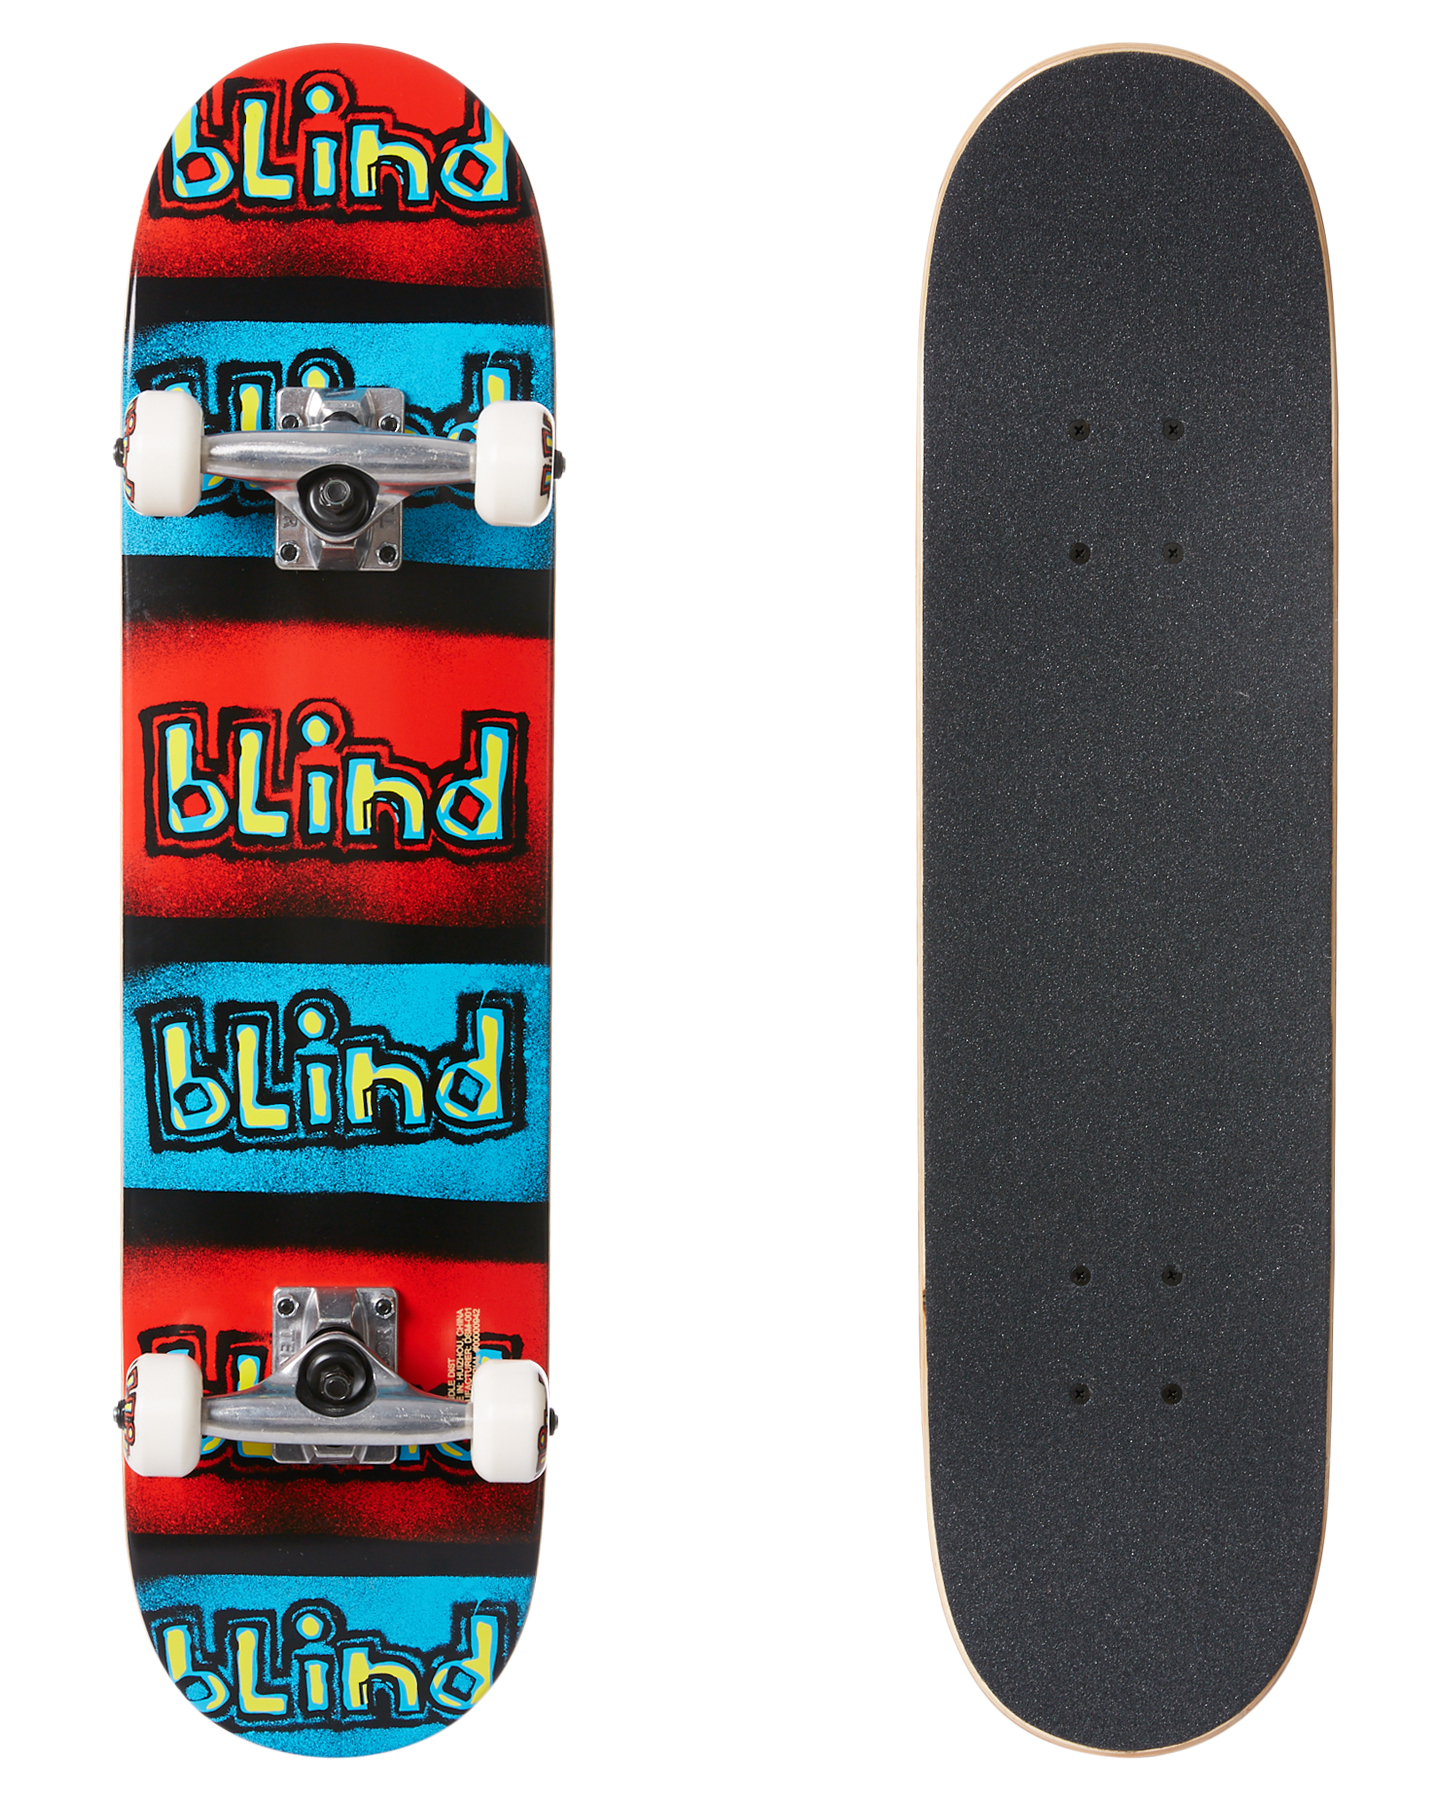 Blind Reflective 7 6 Youth Complete Red Black